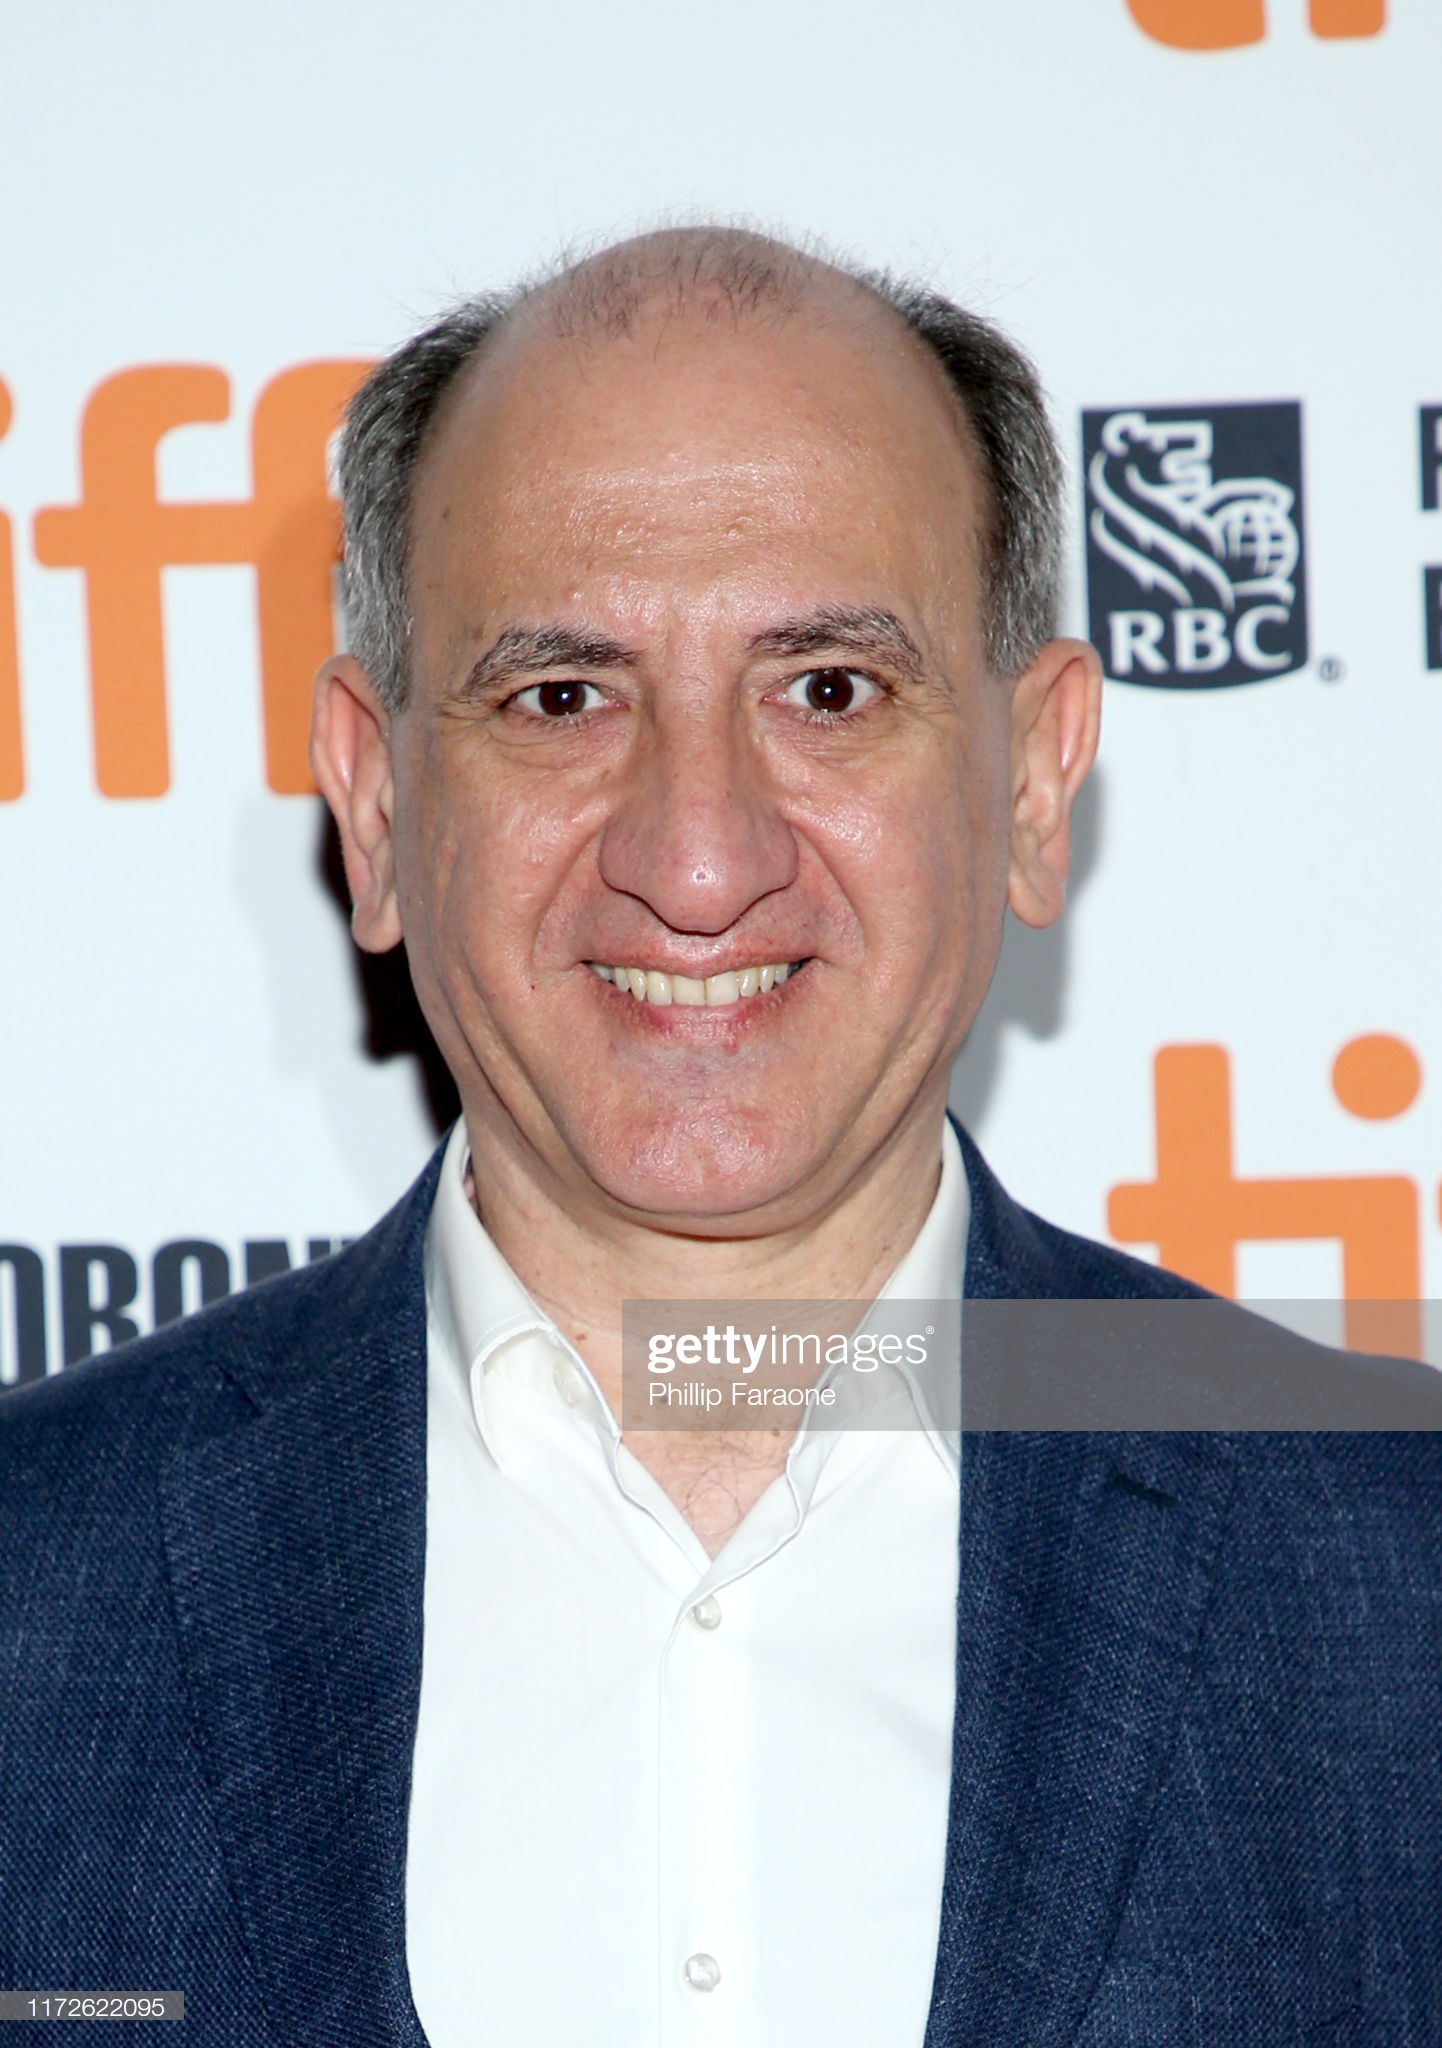 """TORONTO, ONTARIO - SEPTEMBER 05: Armando Iannucci attends """"The Personal History Of David Copperfield"""" premiere during the 2019 Toronto International Film Festival at Princess of Wales Theatre on September 05, 2019 in Toronto, Canada. (Photo by Phillip Faraone/Getty Images)"""